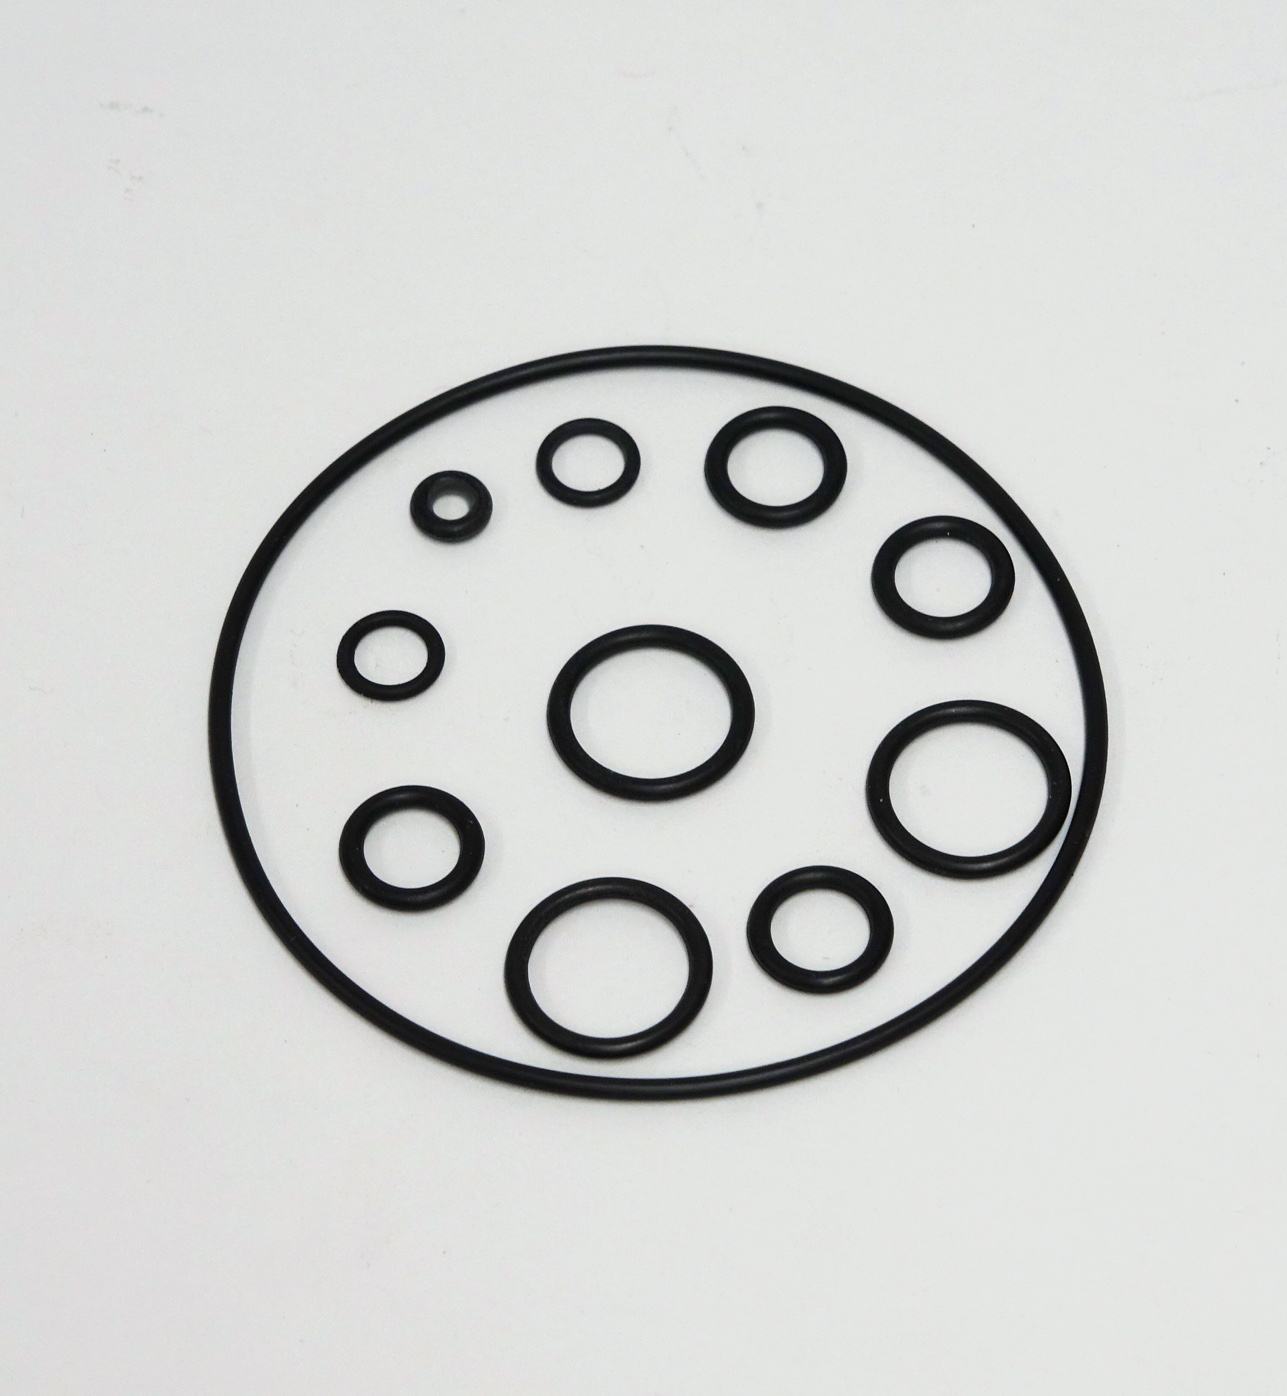 O RING KIT FOR 6002F1